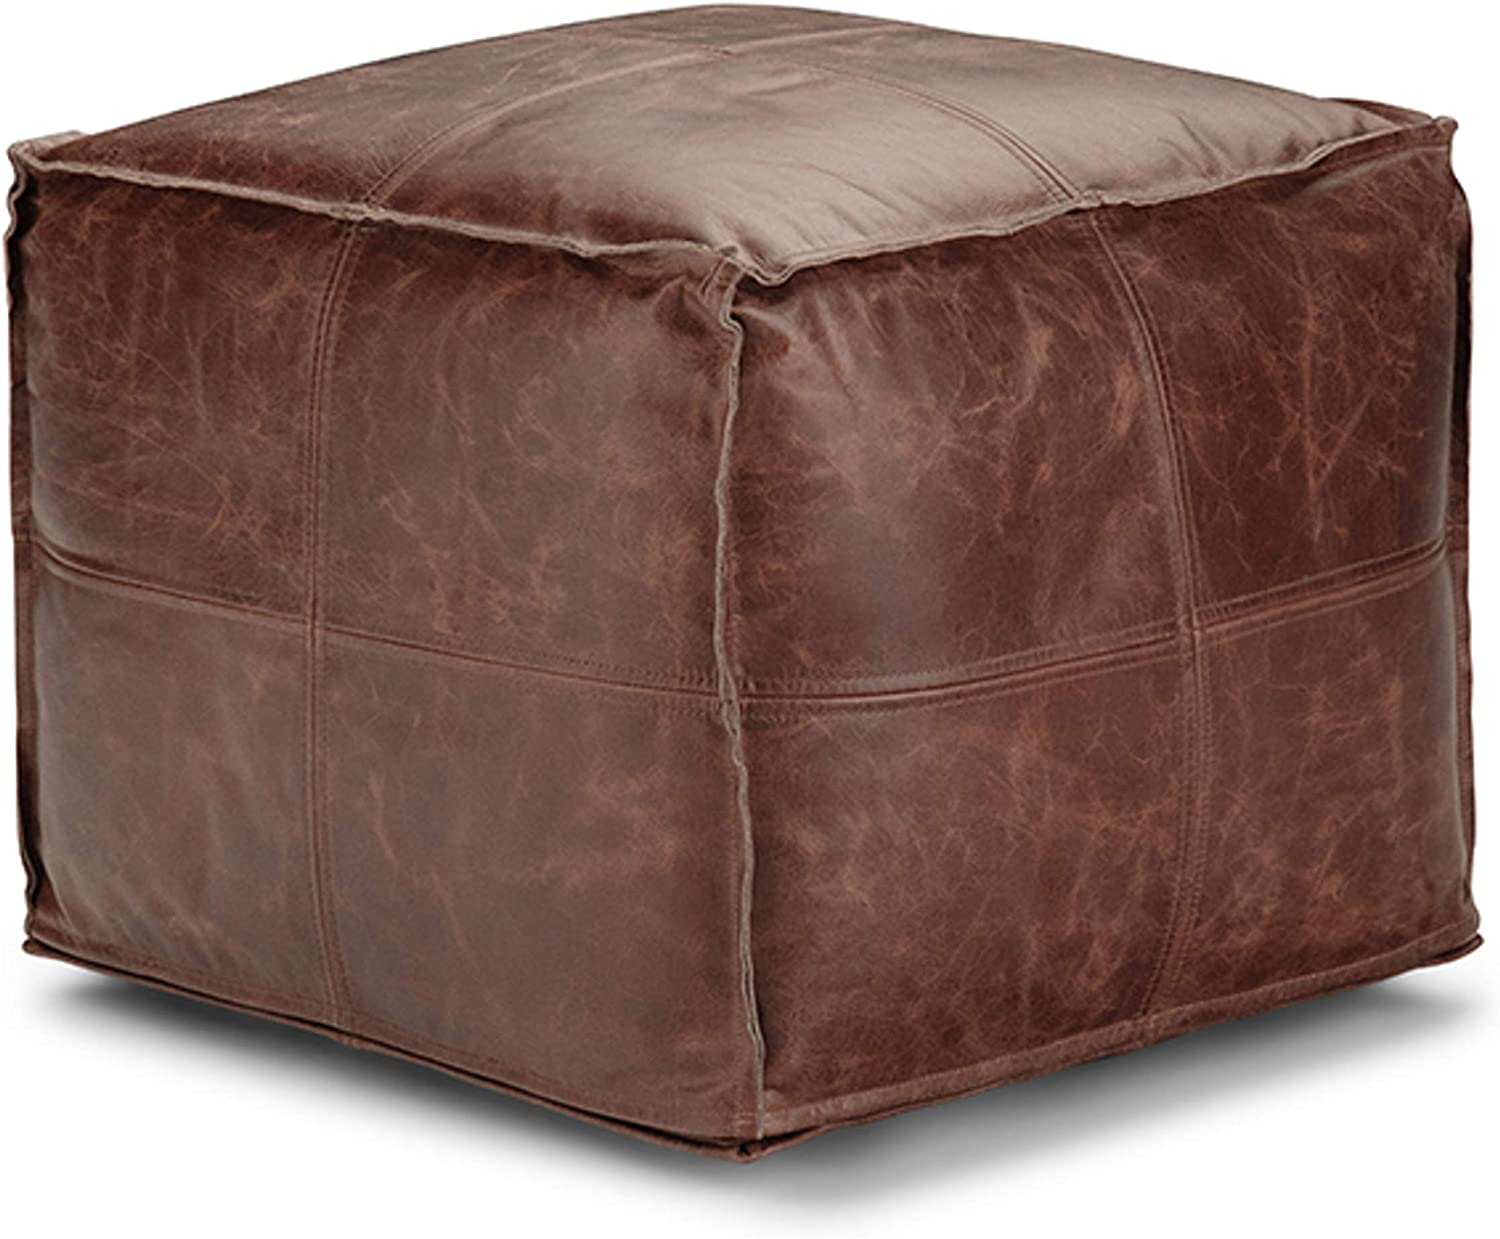 In a popularity SIMPLIHOME Sheffield Square Poufs 18 inch Brown Seattle Mall